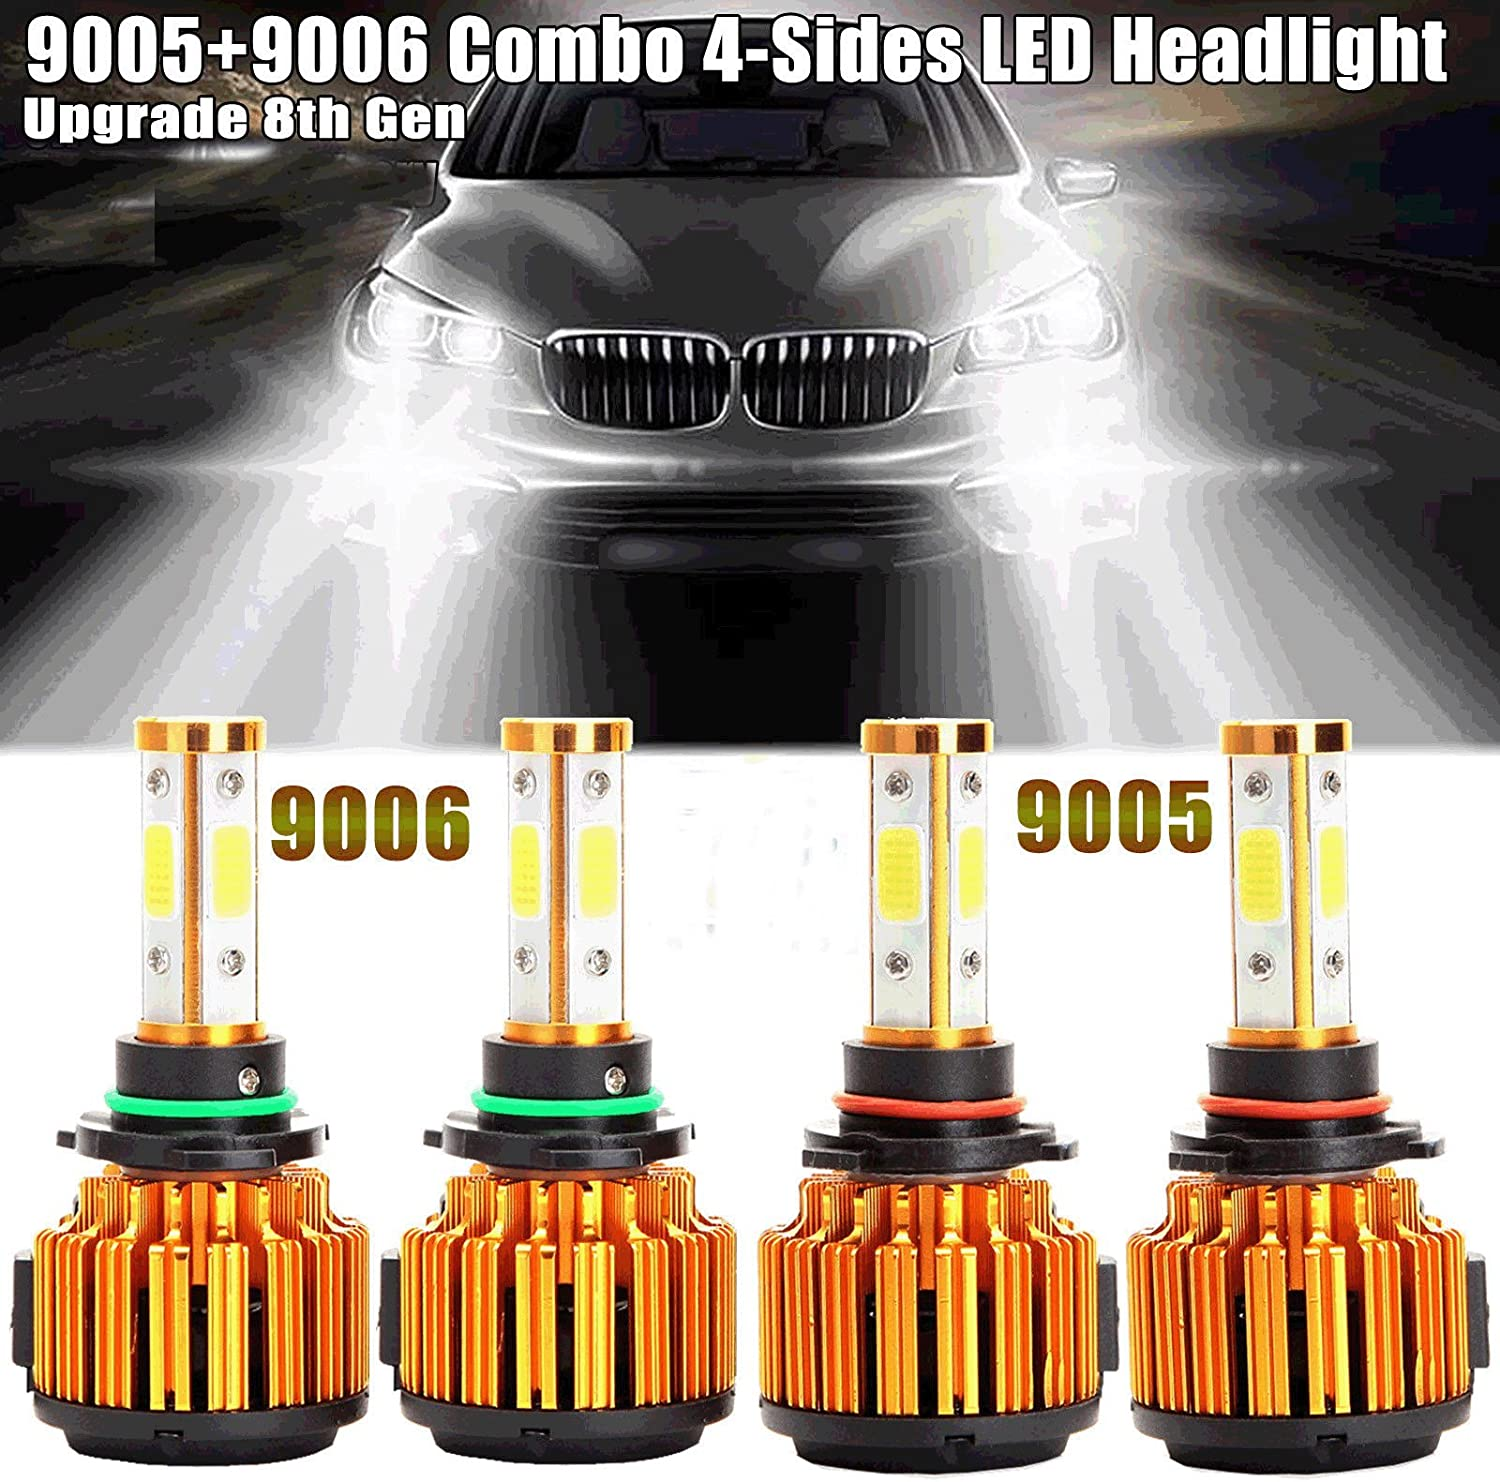 20000LM 4-Side Super Bright 6000K Pure Cool White Plug n Play Head Light Replacement Kit WISWIS 2018 Newest H11 LED Headlight Bulb Low Beam//H9 LED High Beam//H8 LED Fog Light Bulbs